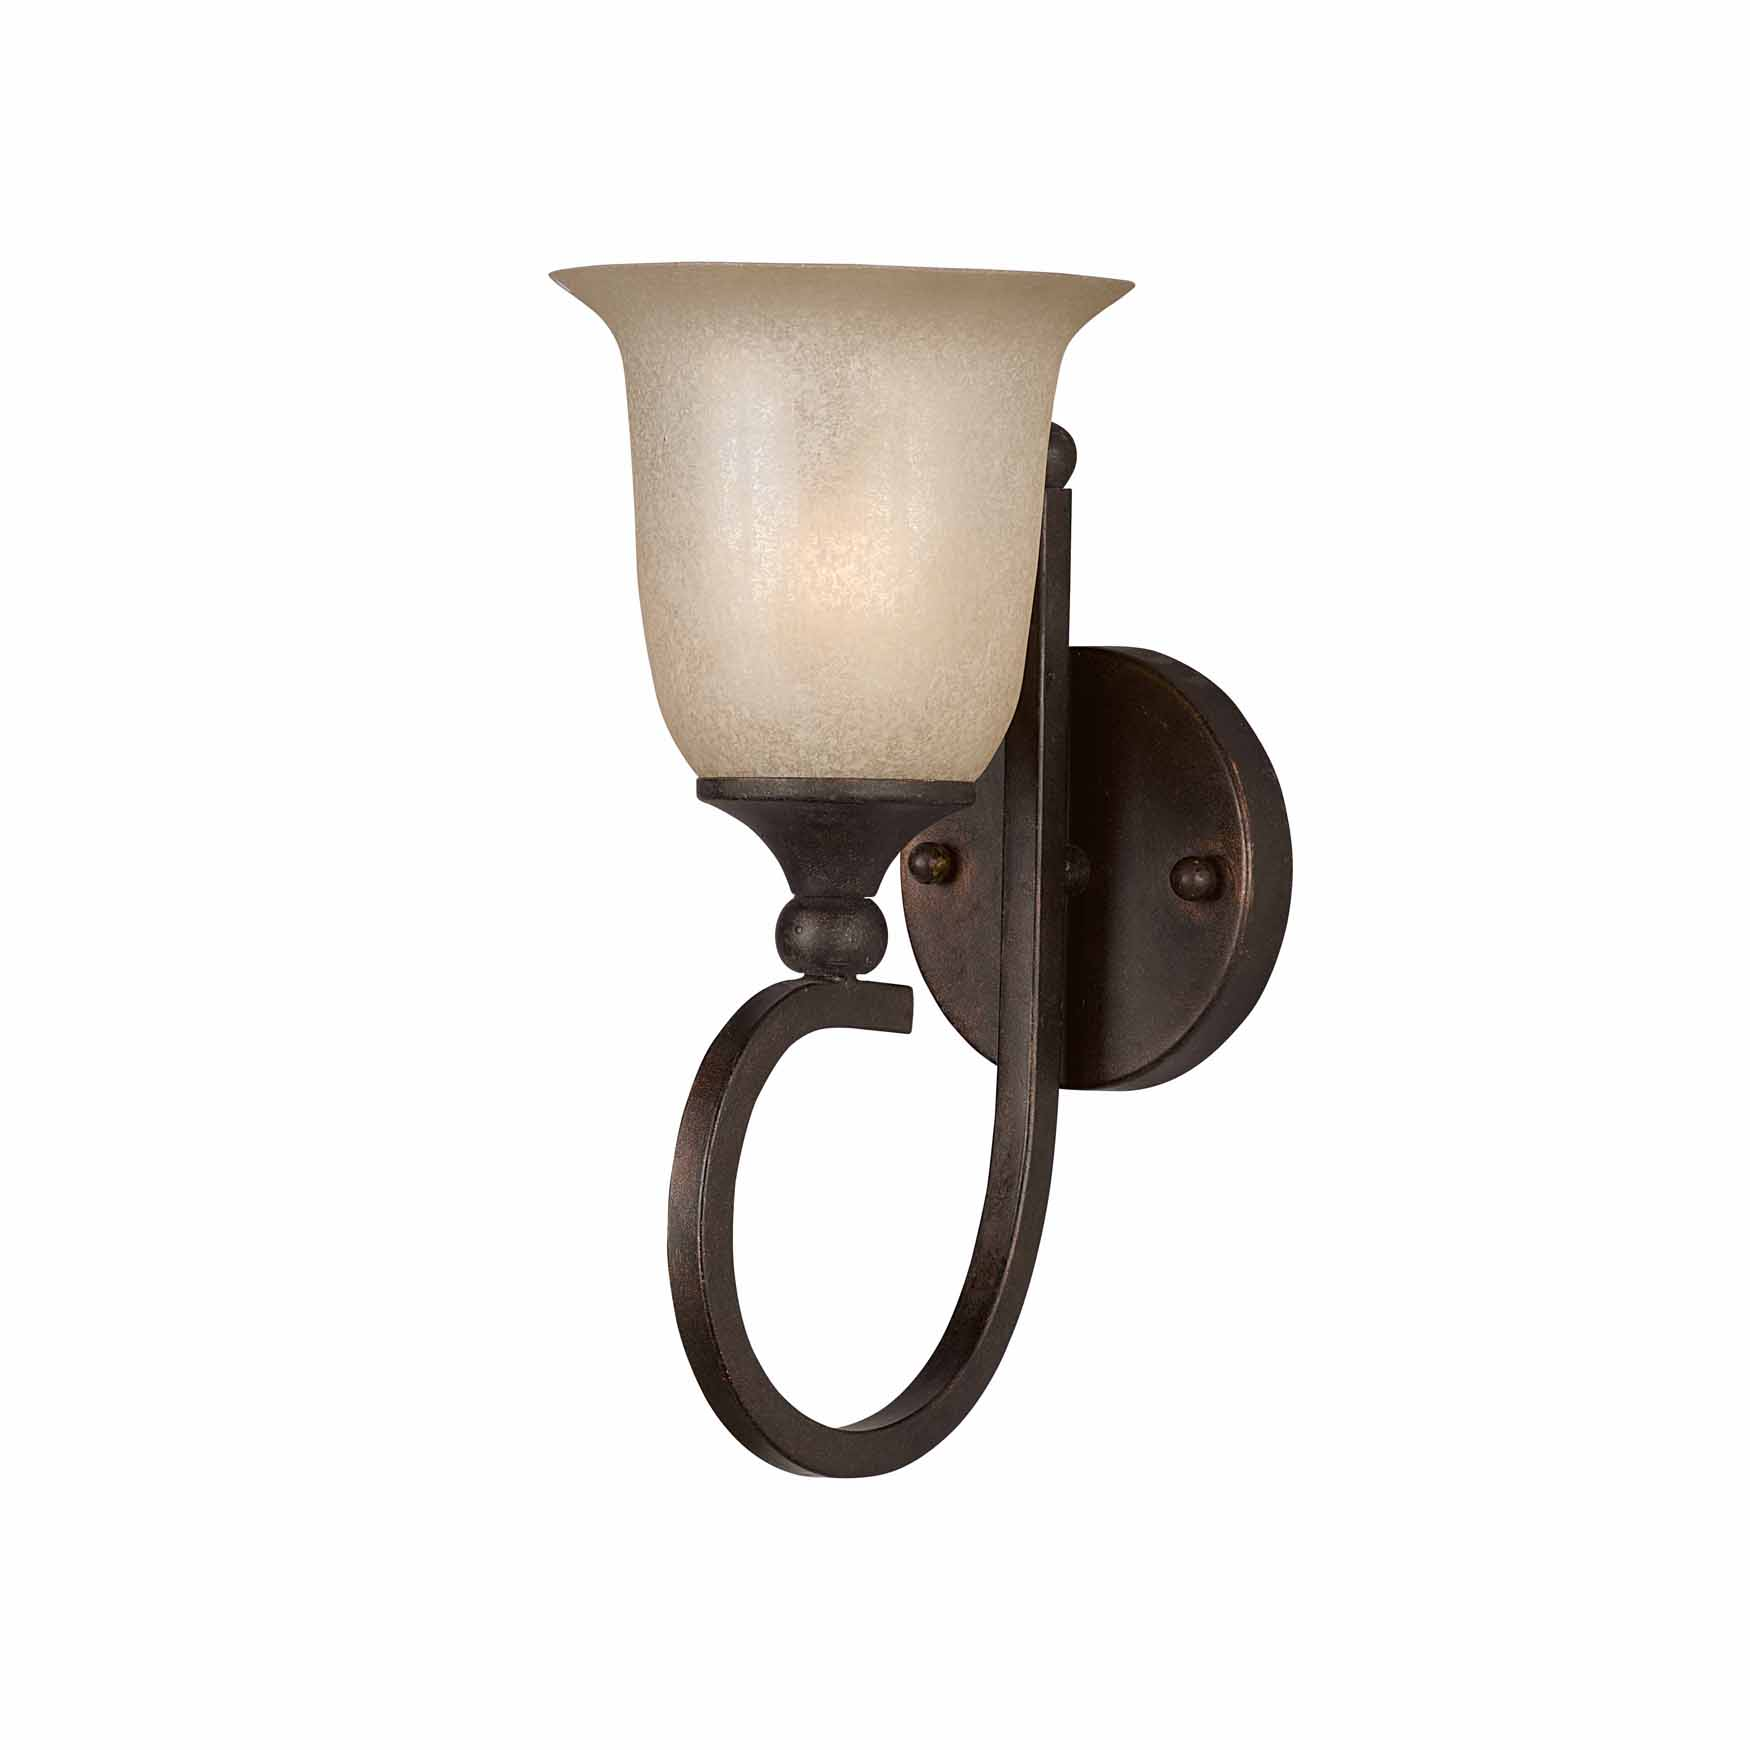 Wall Sconces Bronze Finish : Lumenno Int Athens Collection 1 Light Wall Sconce In A Bronze Finish 1001-00-01